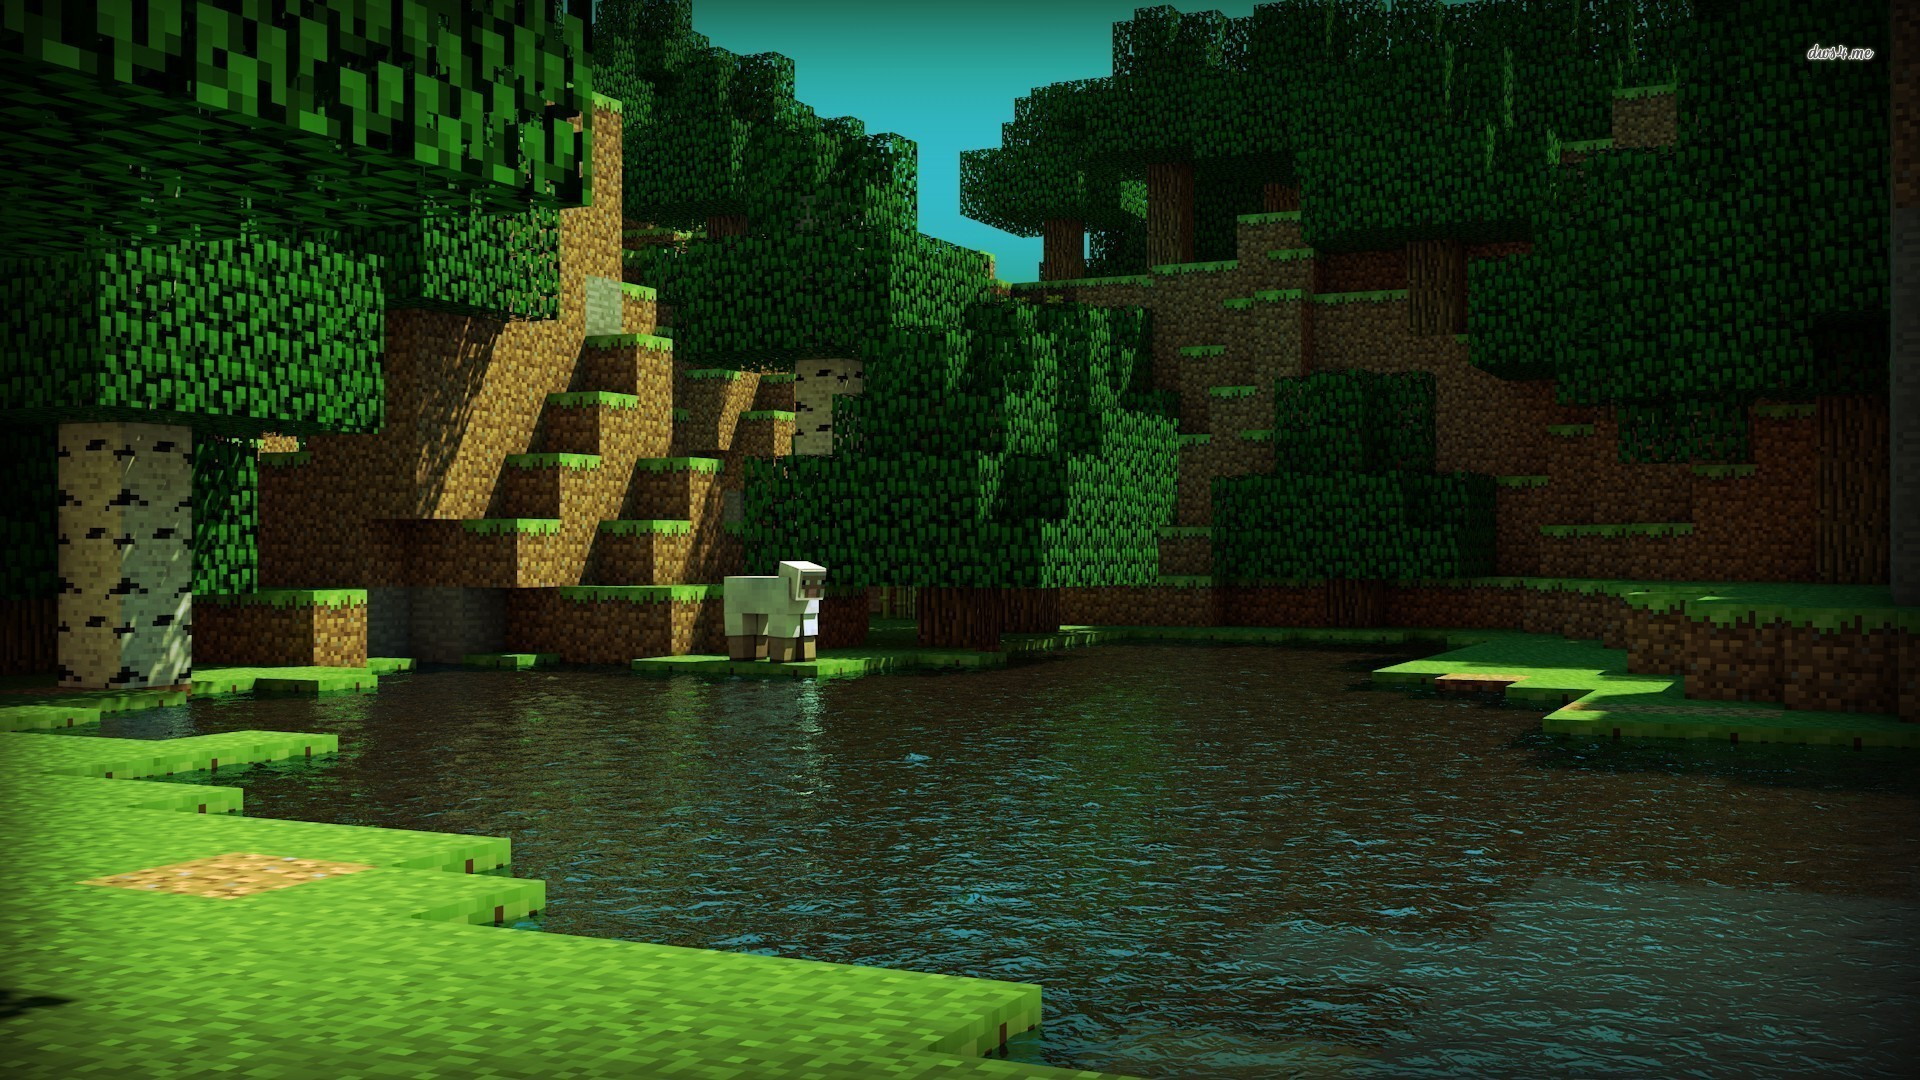 Res: 1920x1080, Minecraft Wallpapers Best Wallpapers